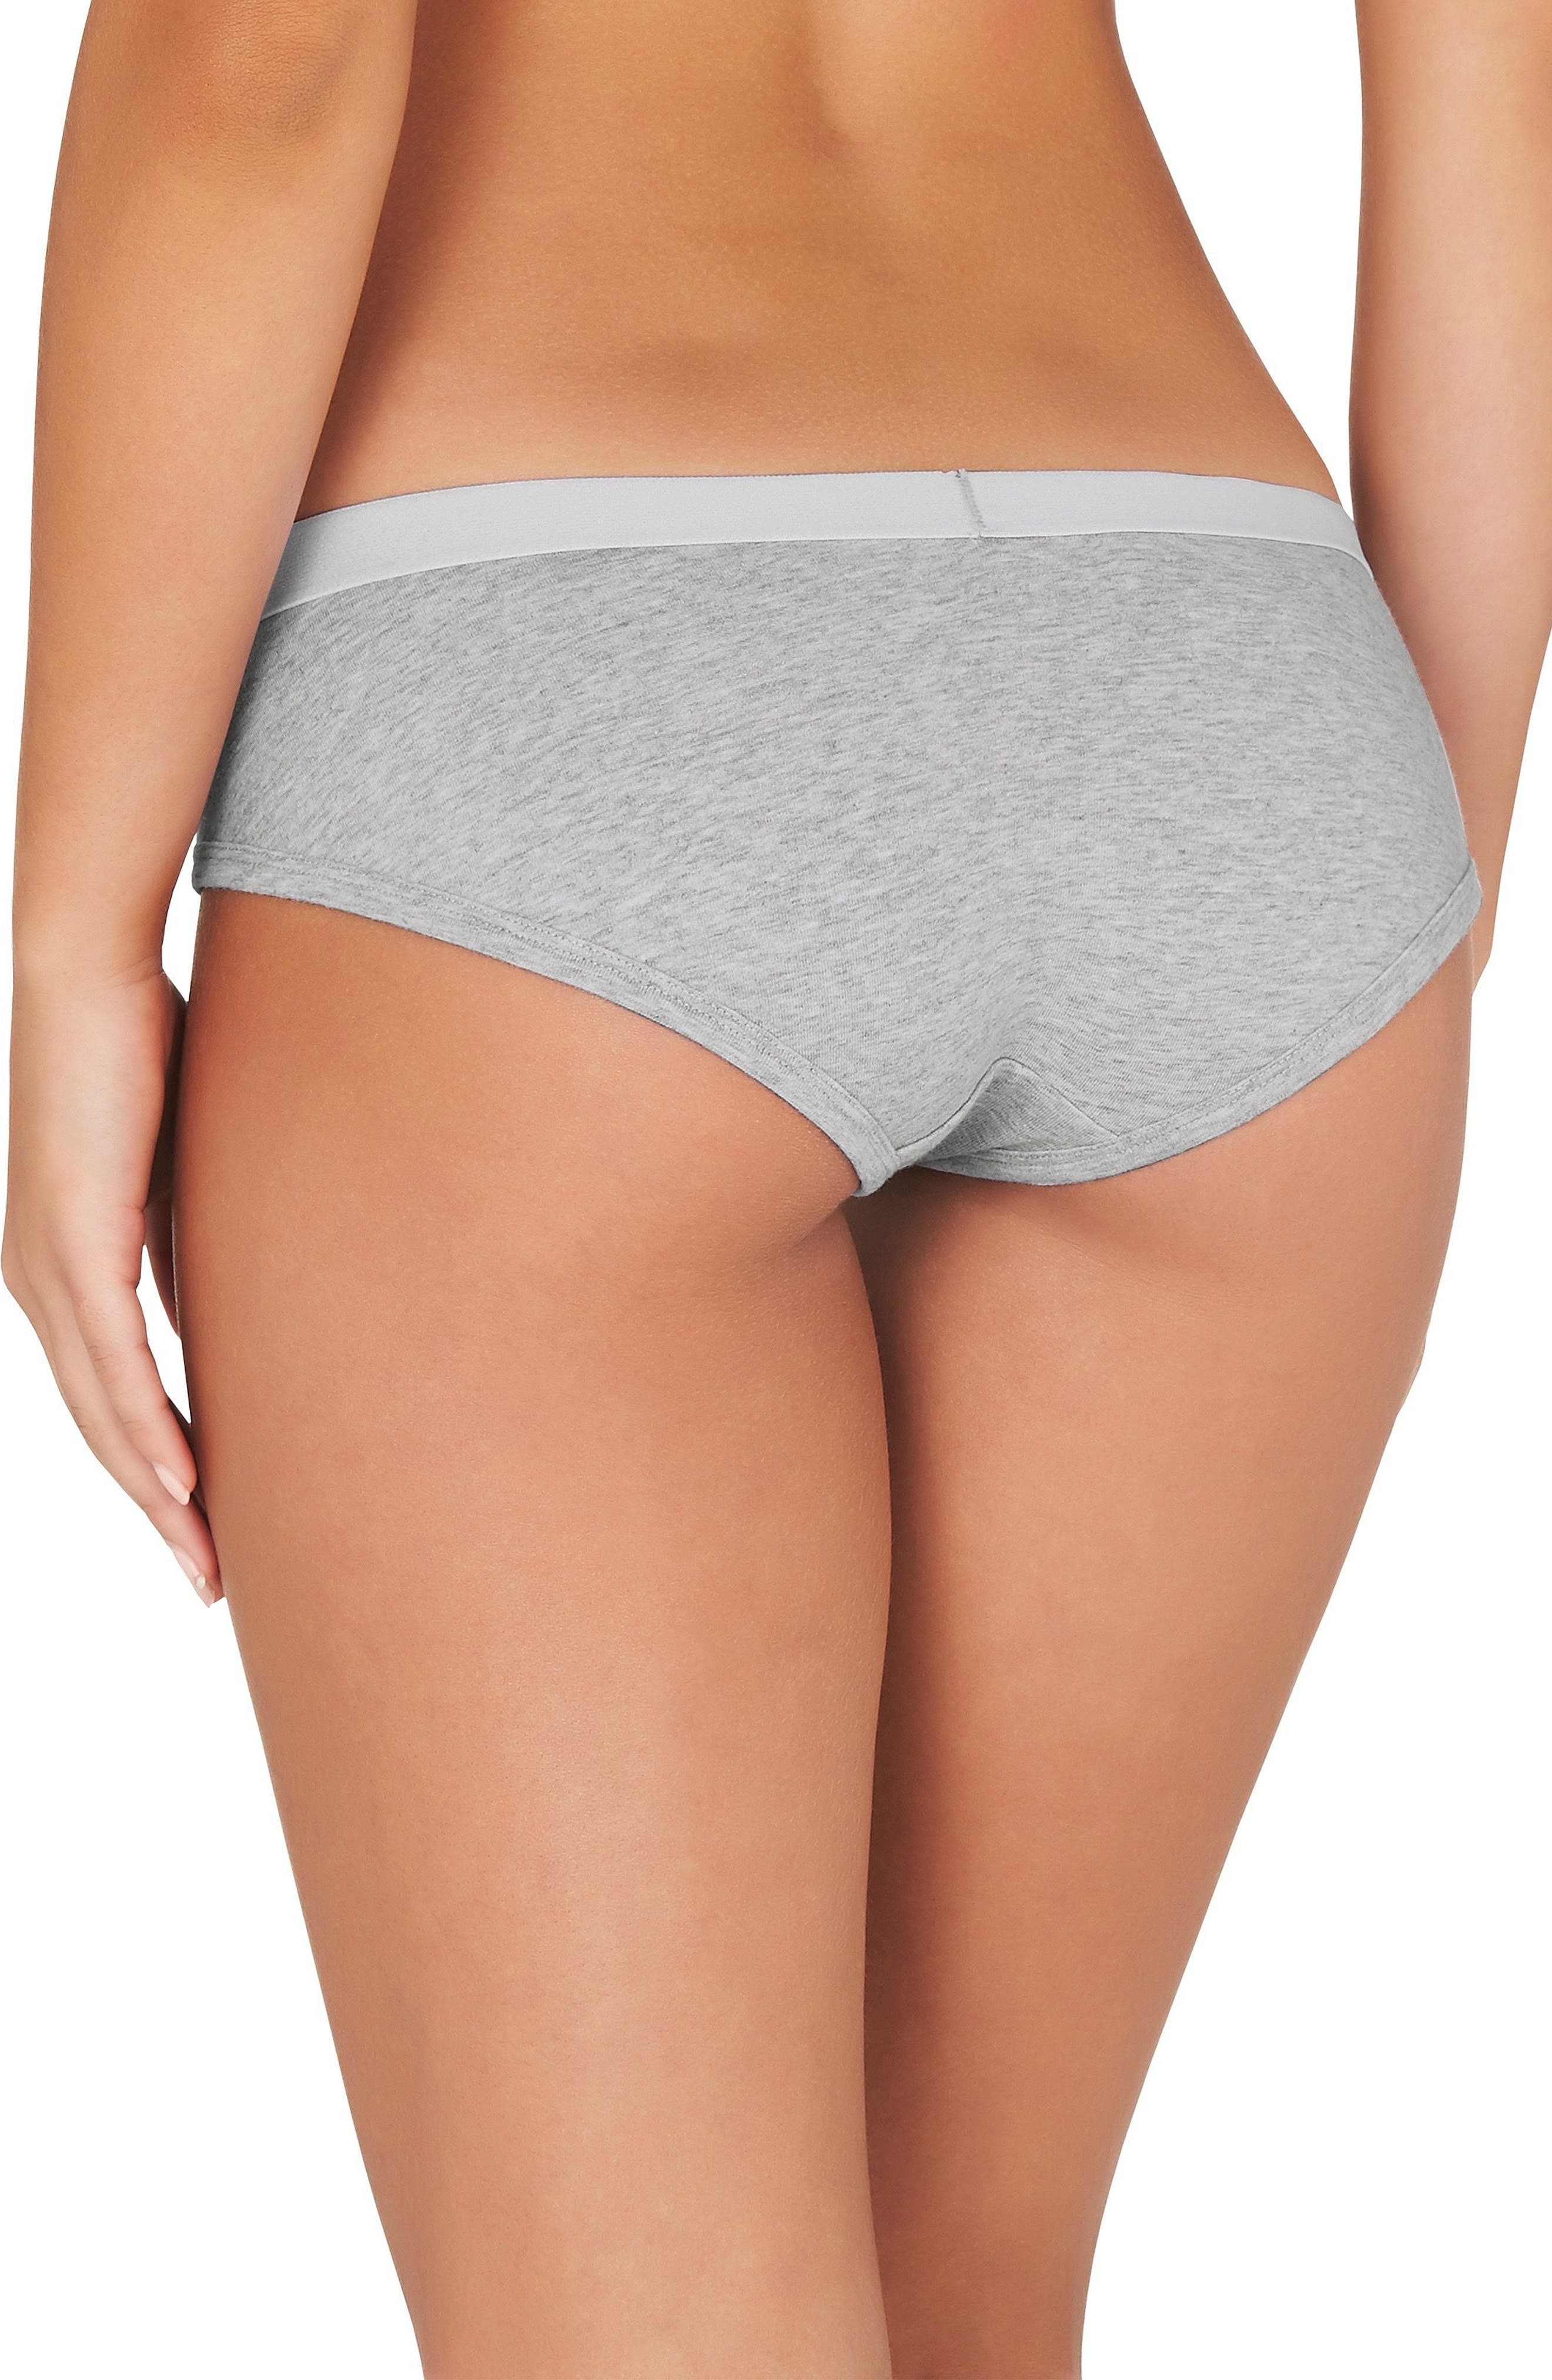 Monday to Sunday 7-Pack Stretch Organic Cotton Hipster Panties,                             Alternate thumbnail 8, color,